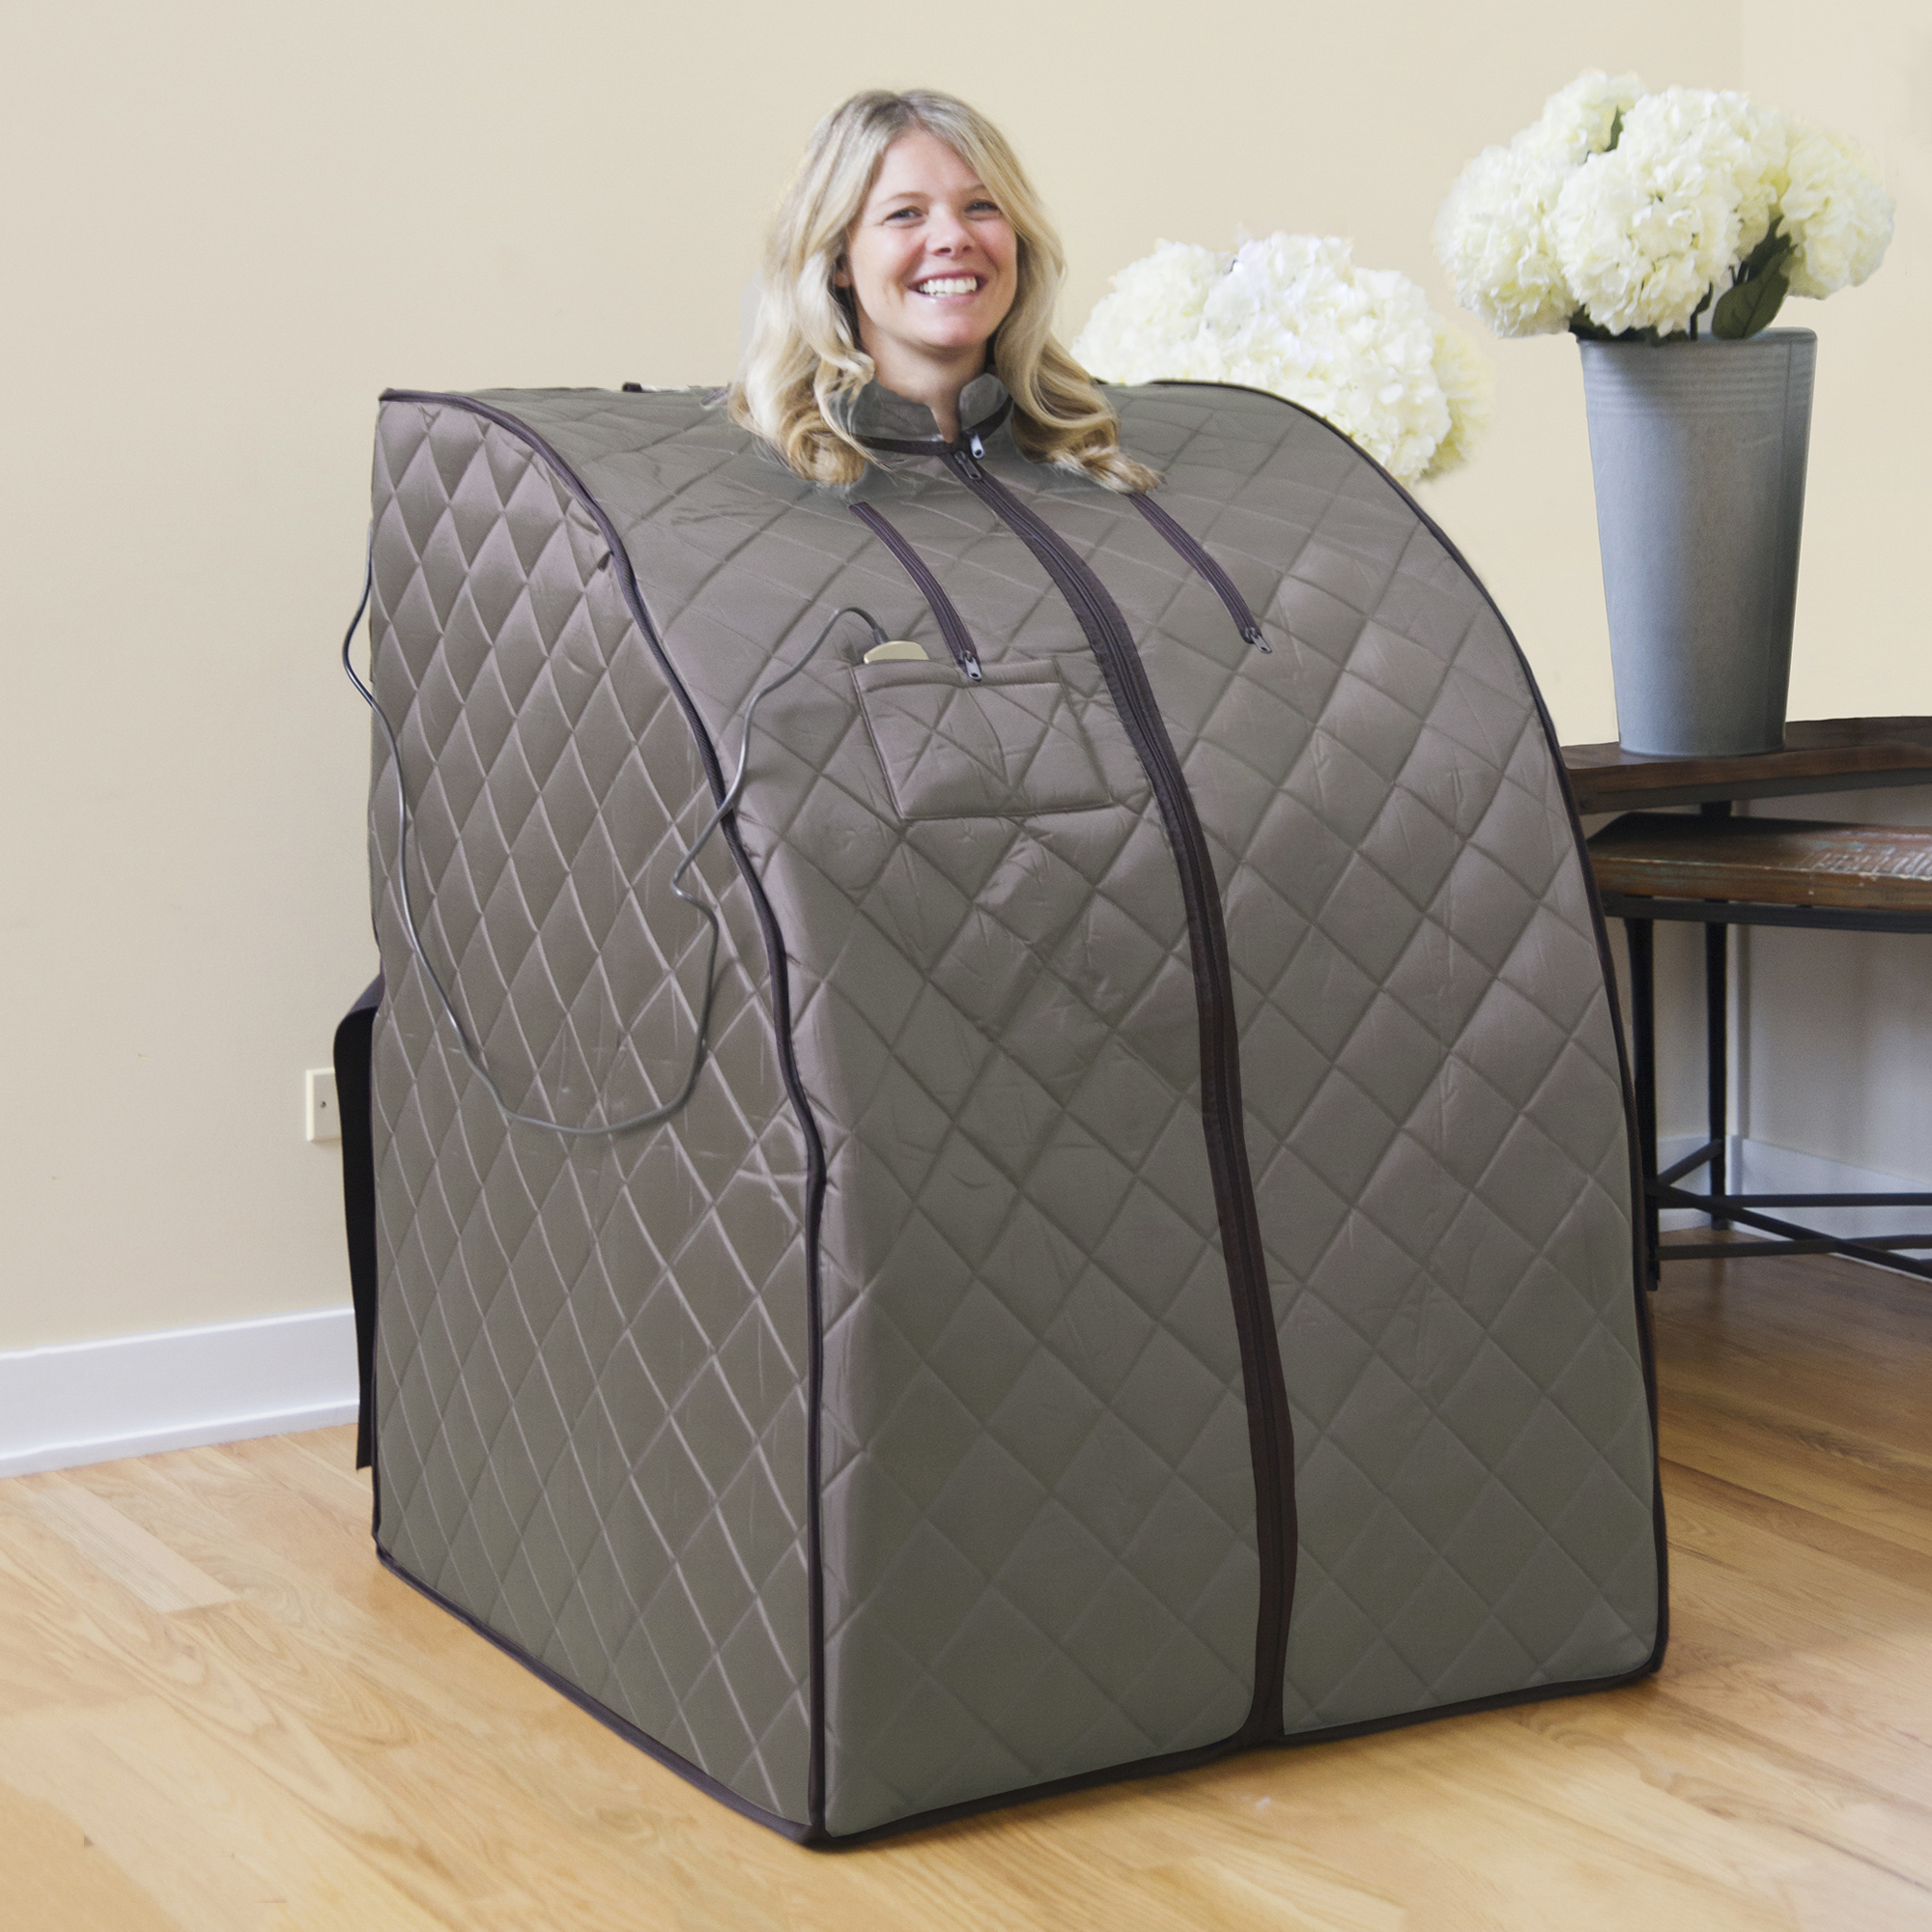 Radiant Saunas Rejuvenator Portable Sauna by Blue Wave